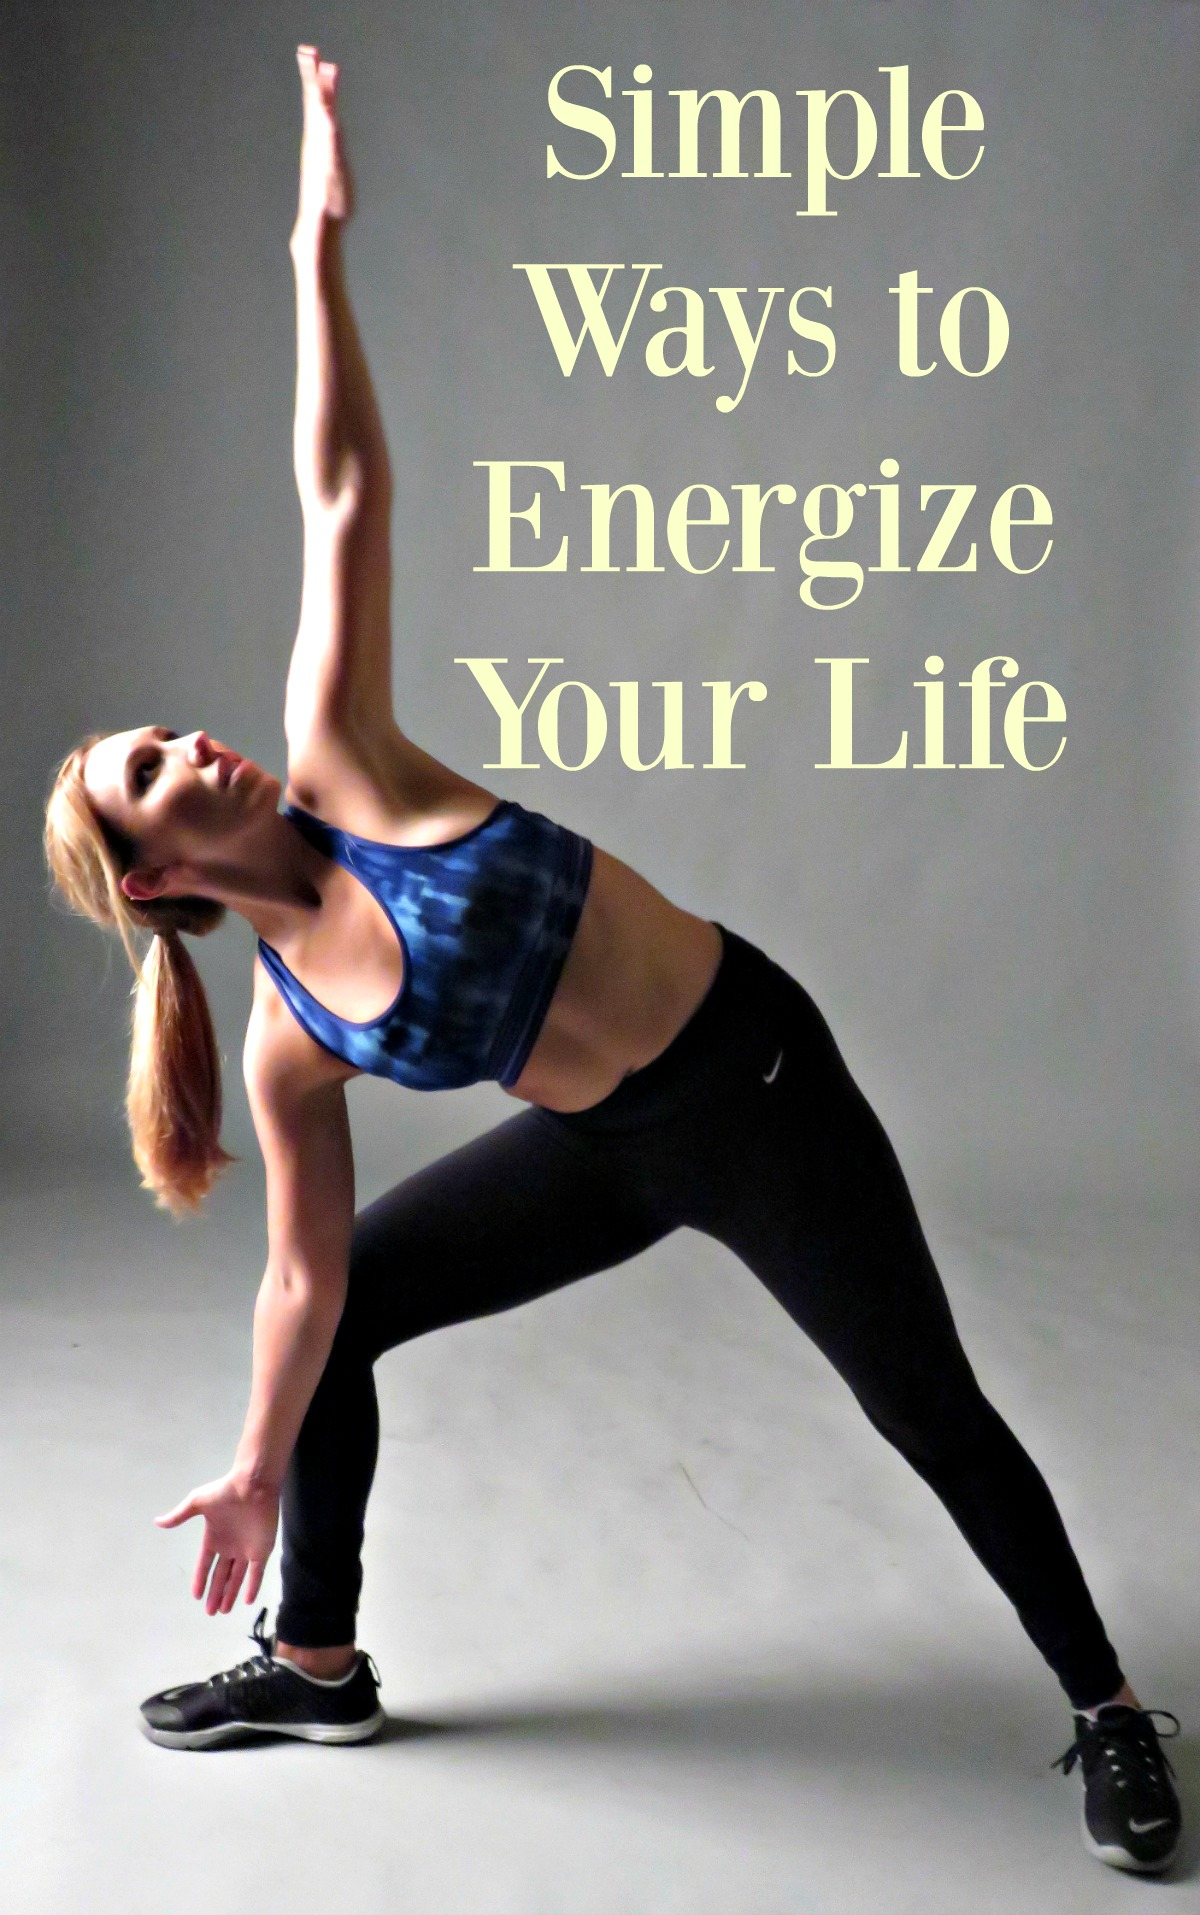 Simple Ways to Energize Your Life